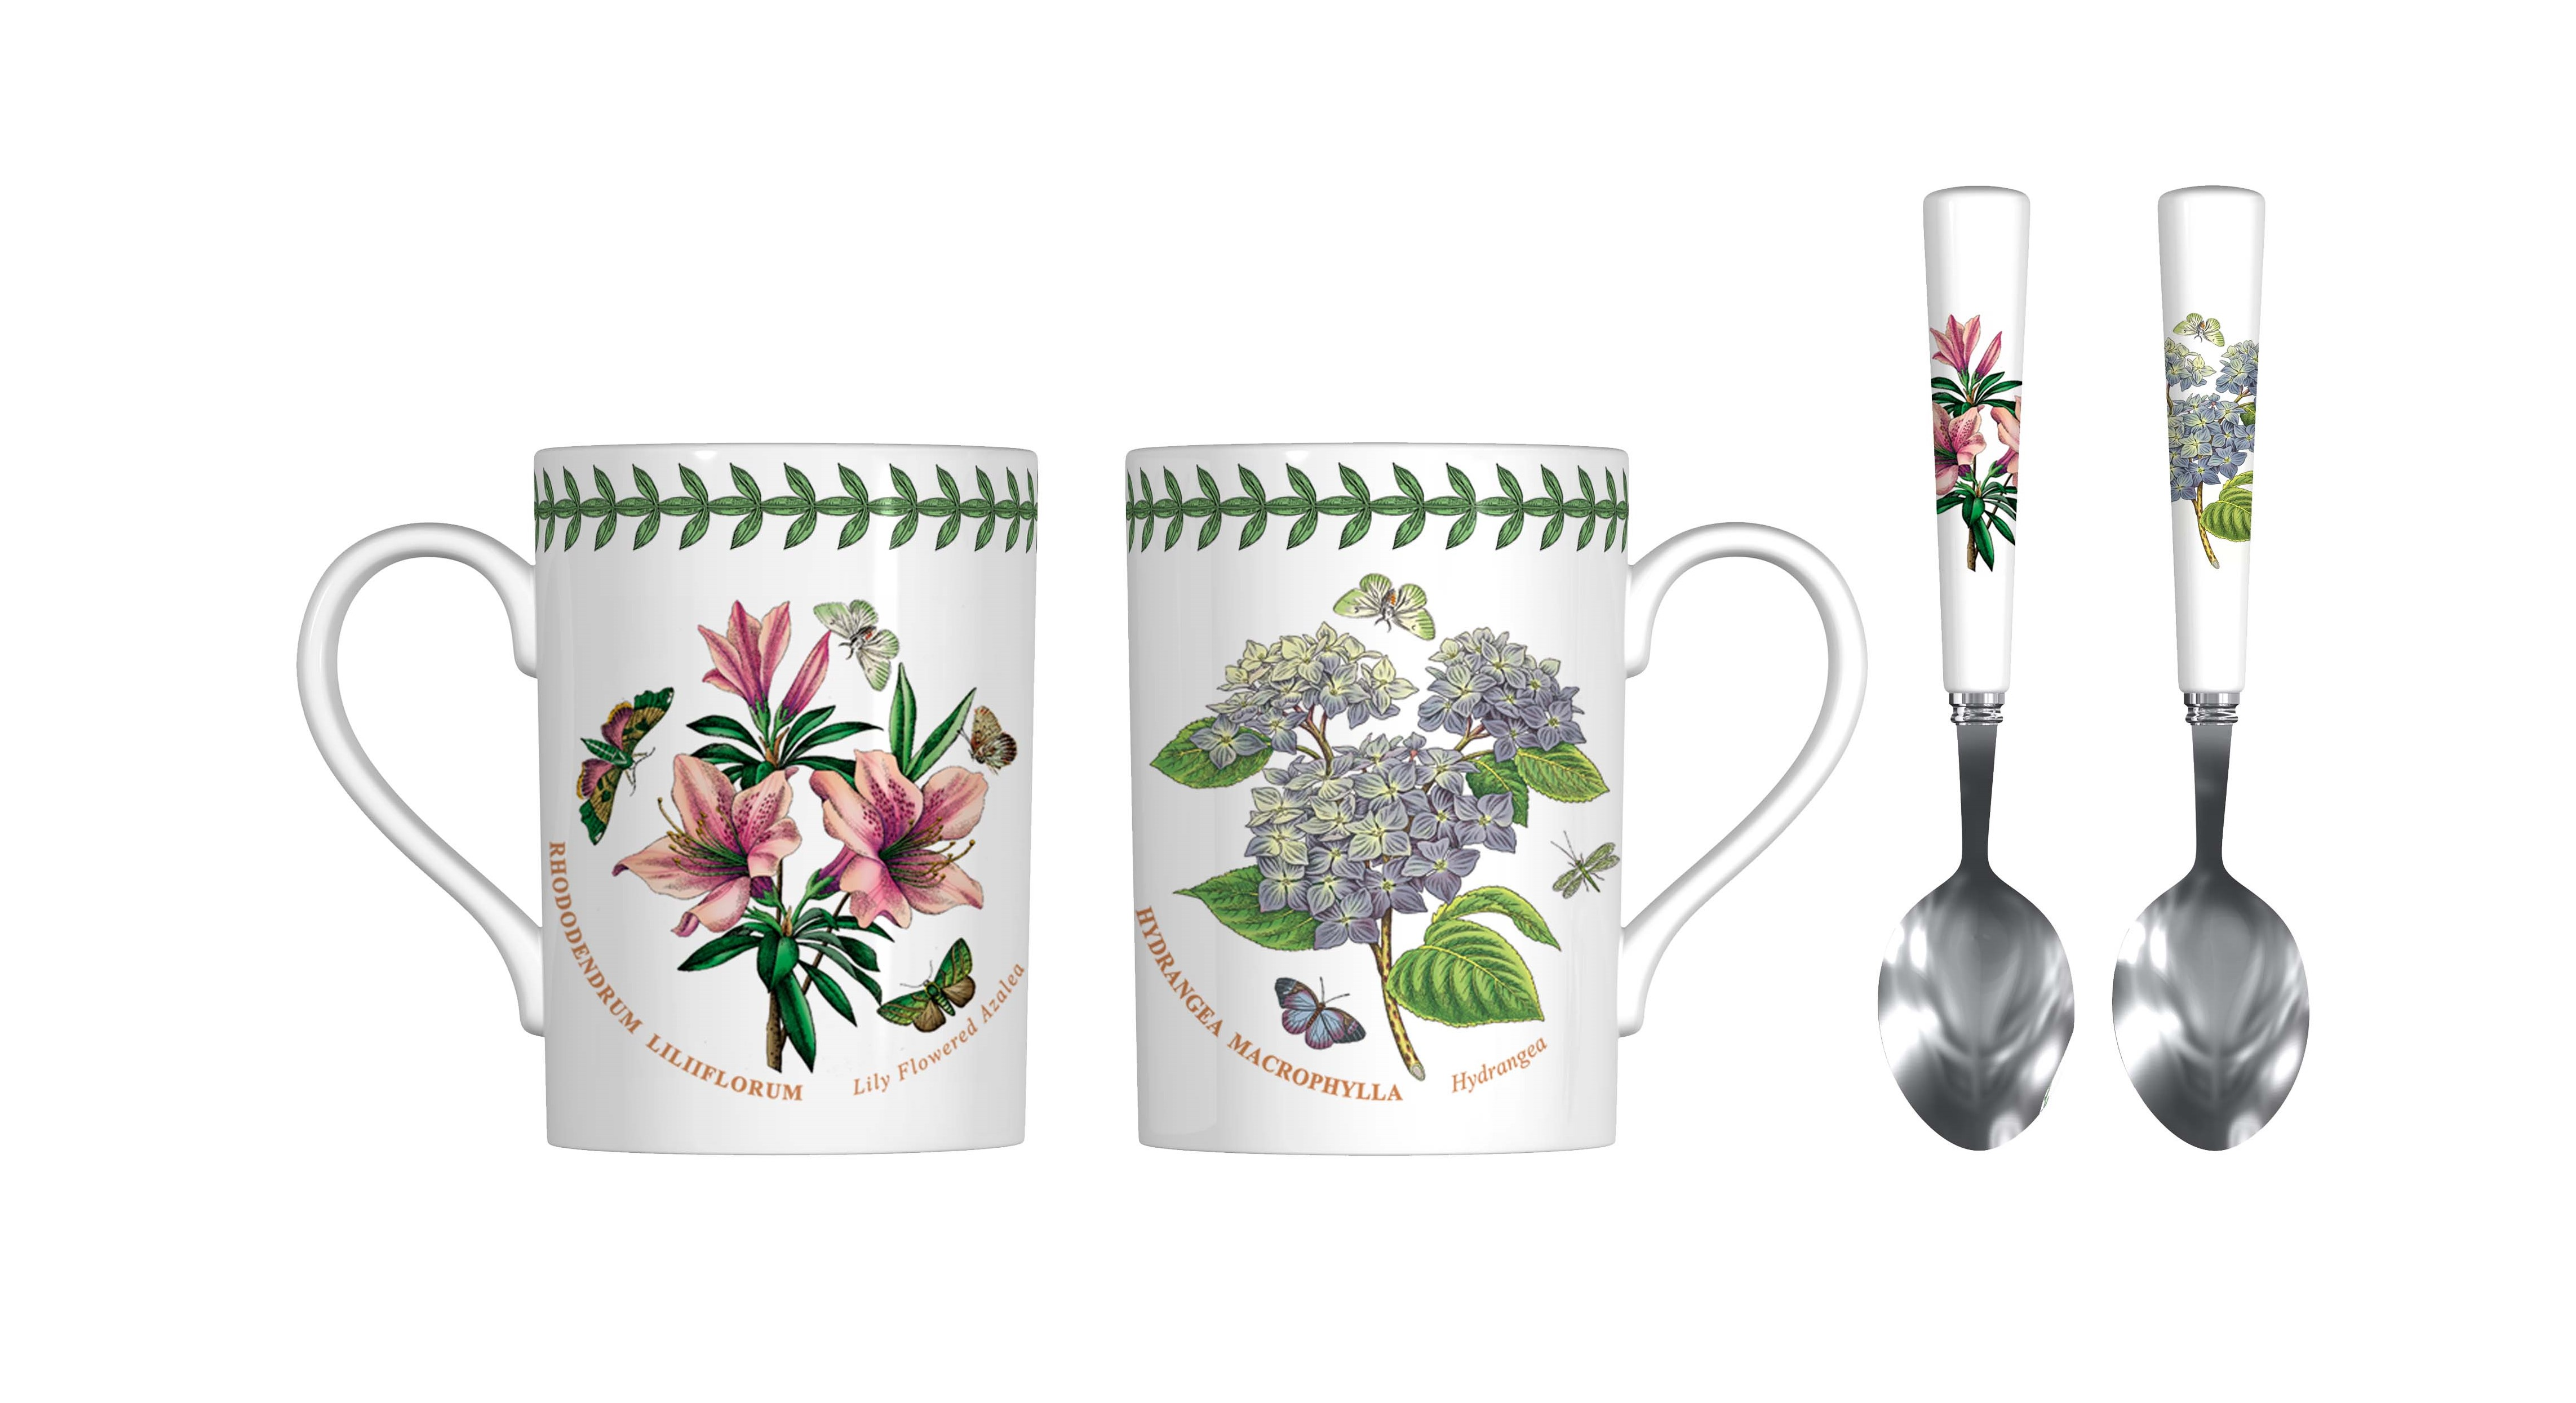 Botanic Garden 4 Piece Mug and Spoon Set (Azalea/Hydrangea) image number 0